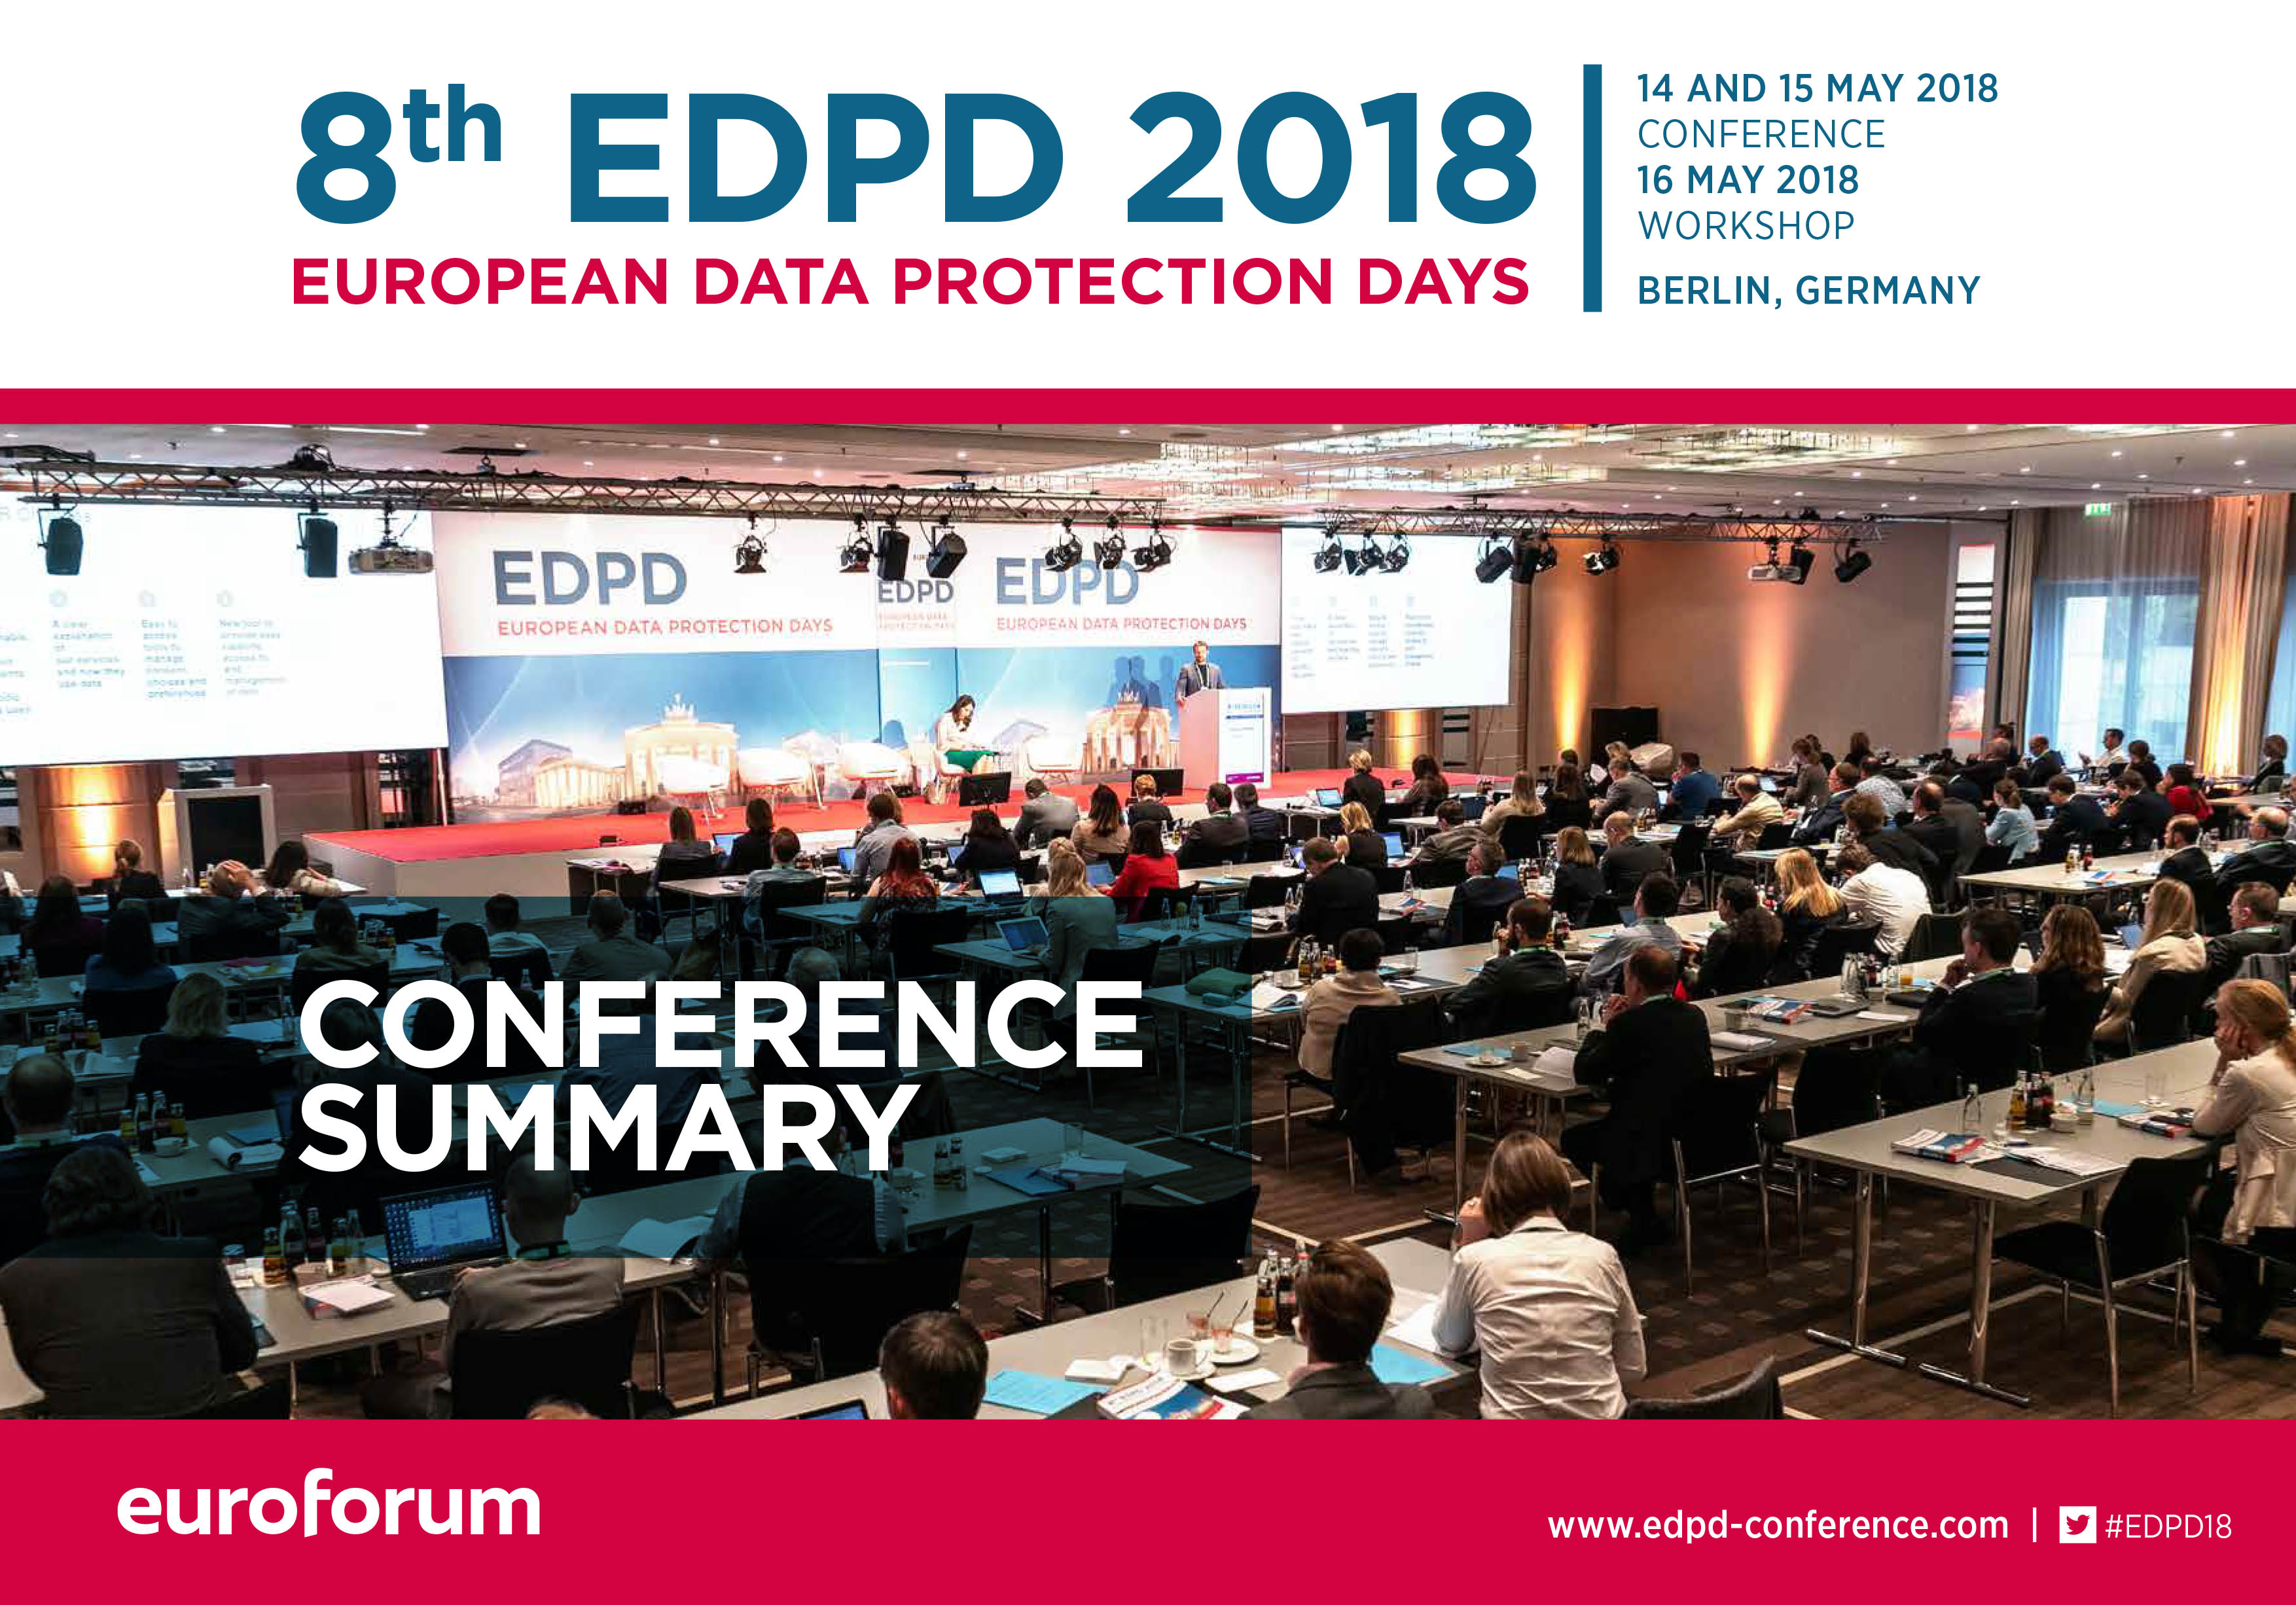 European Data Protection Days Conference Summary